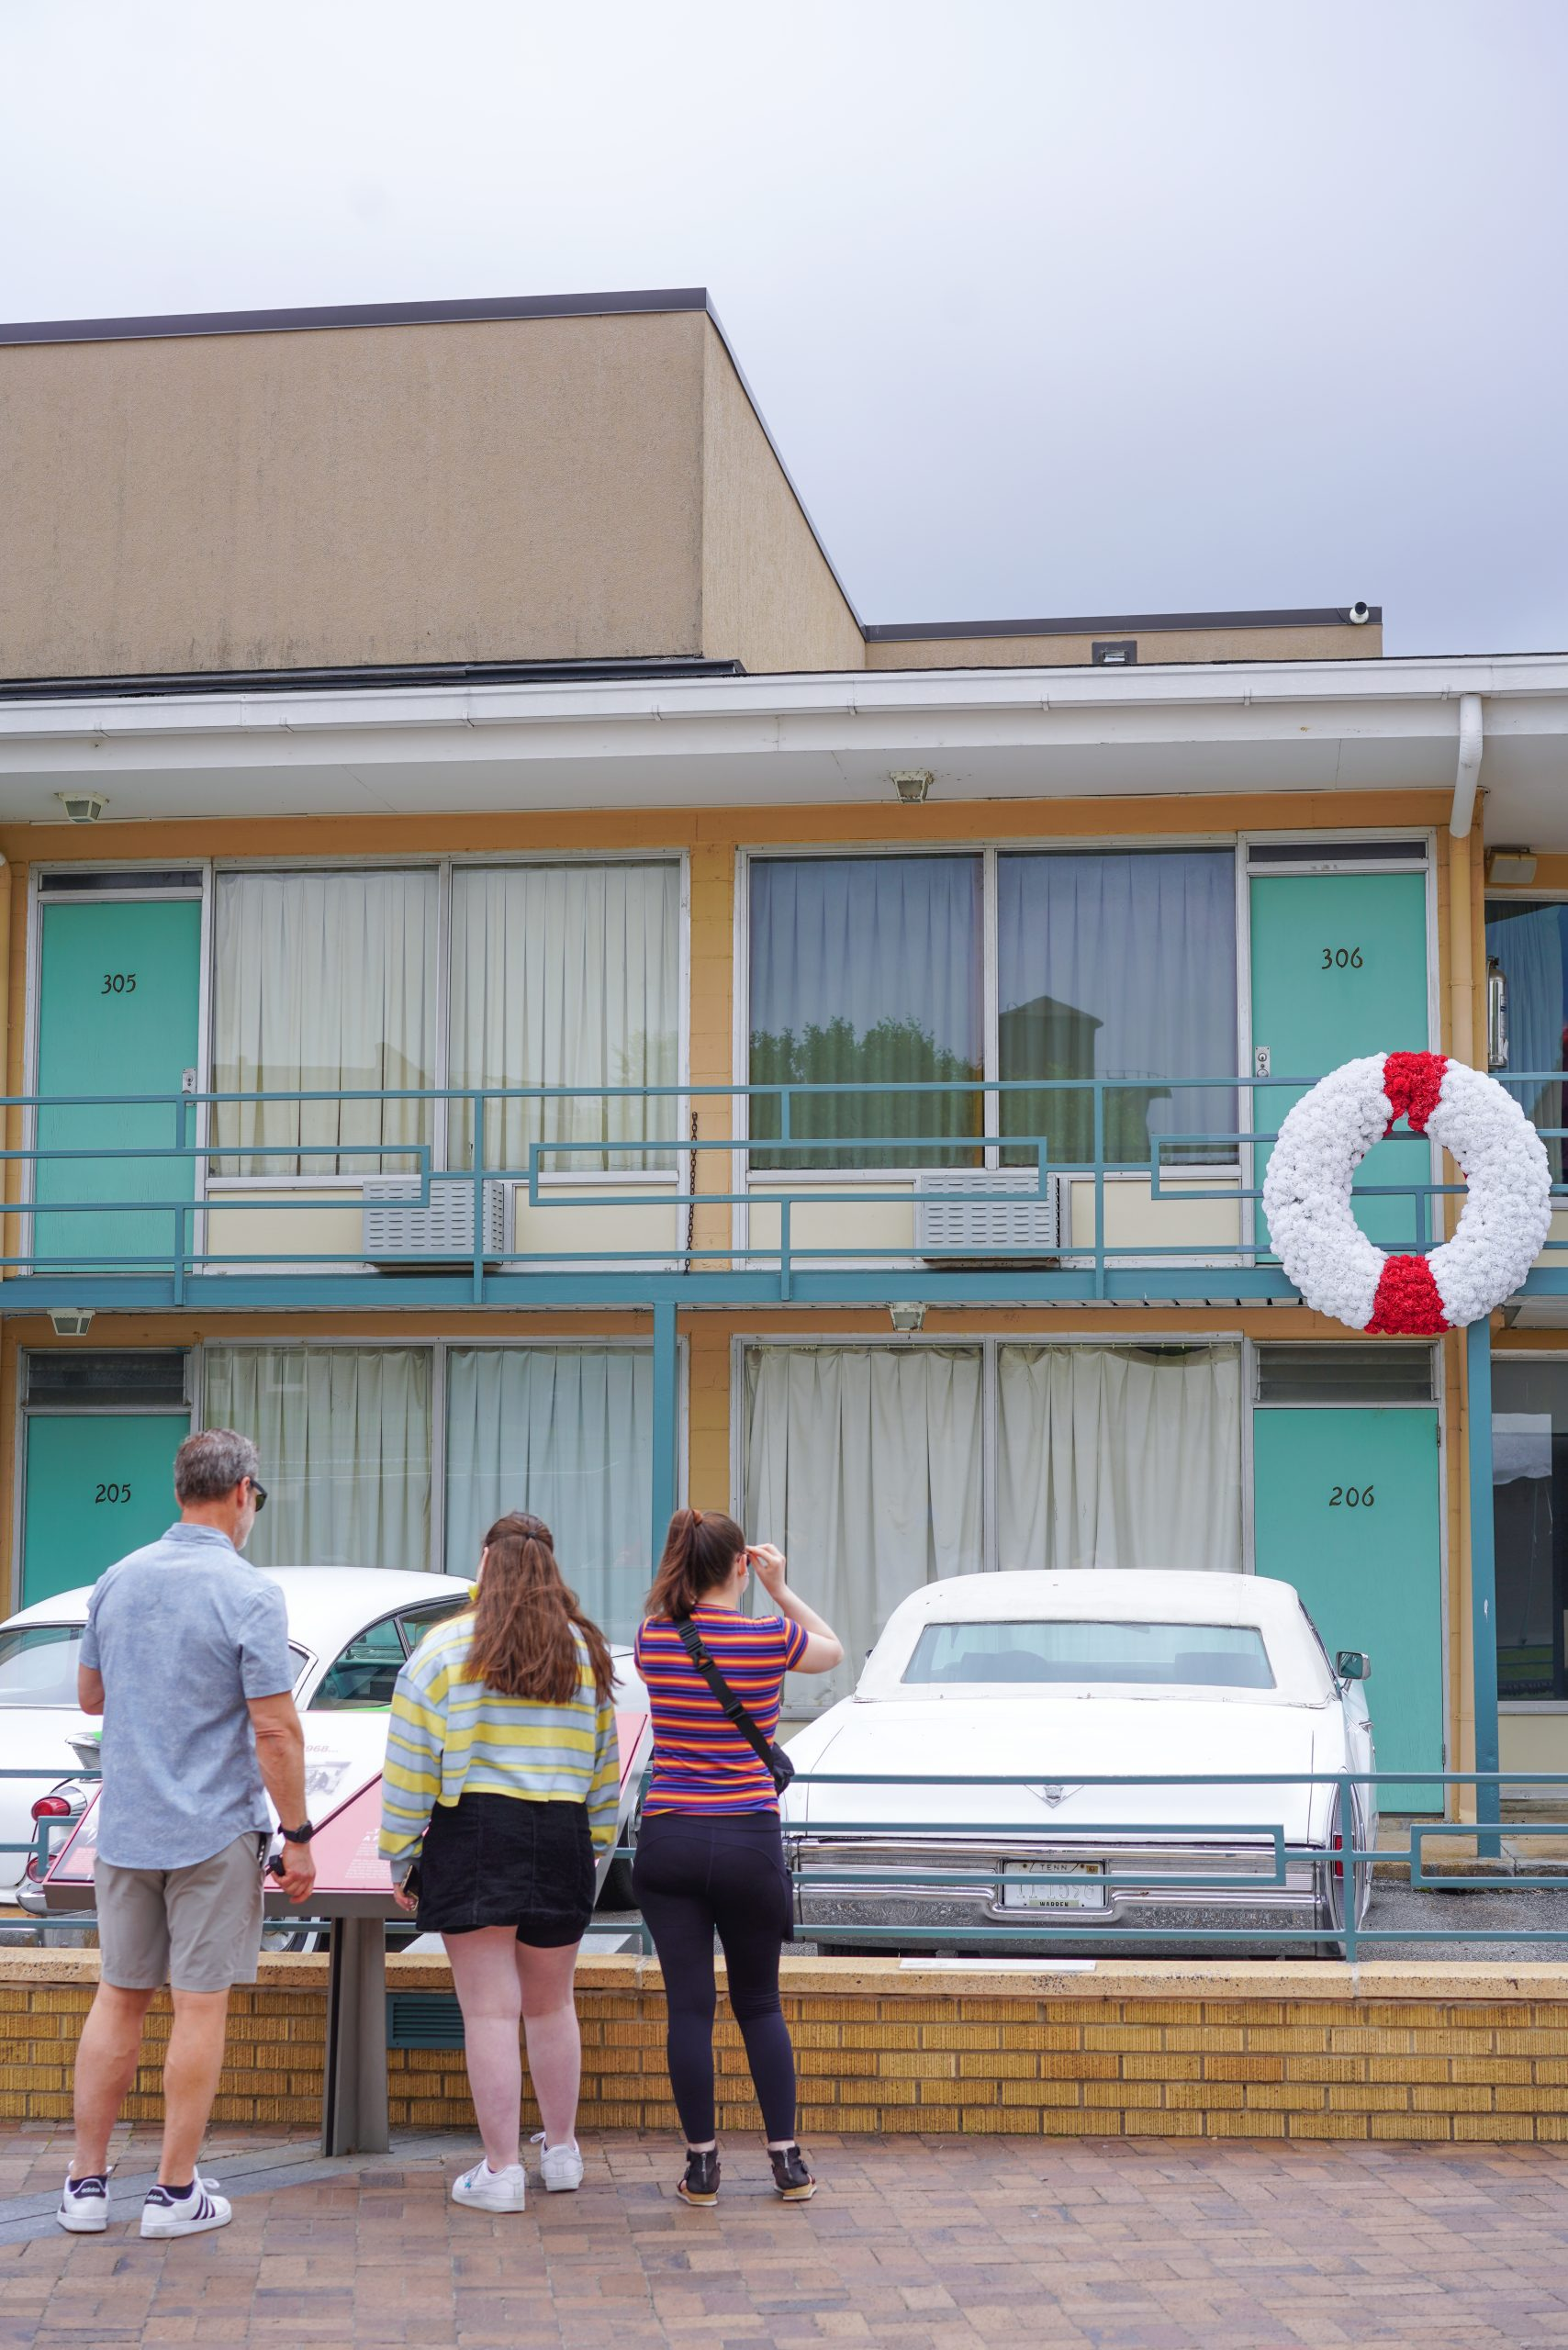 Dr. Martin Luther King Balcony at The Lorraine Motel Memphis, Tennessee